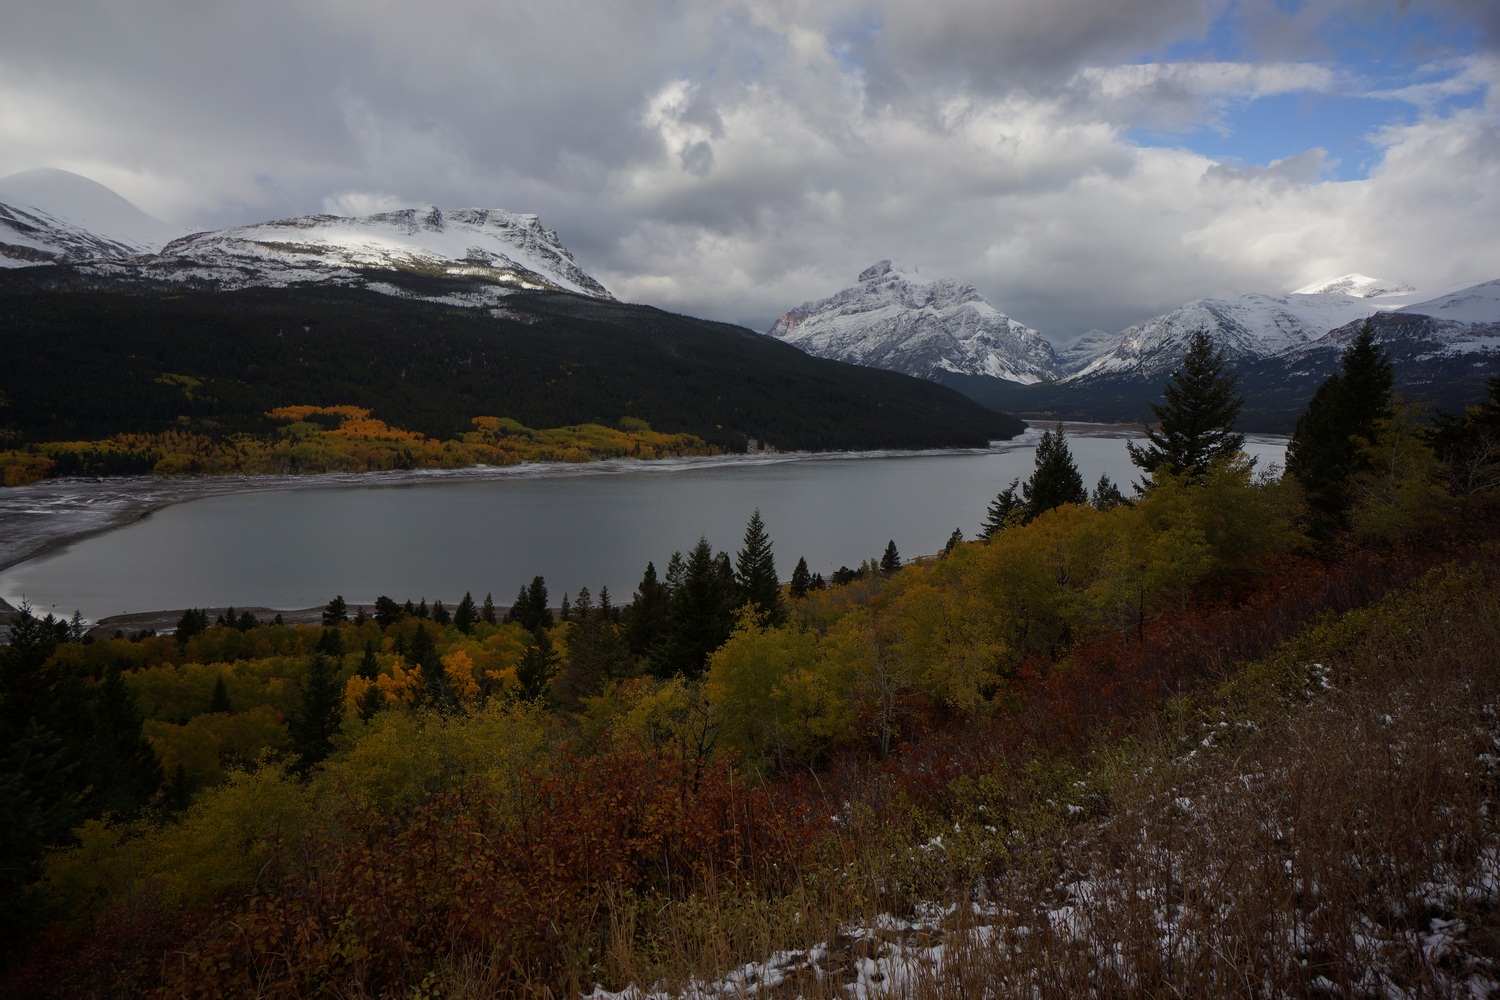 east glacier to canada hike on the continental divide trail 2018